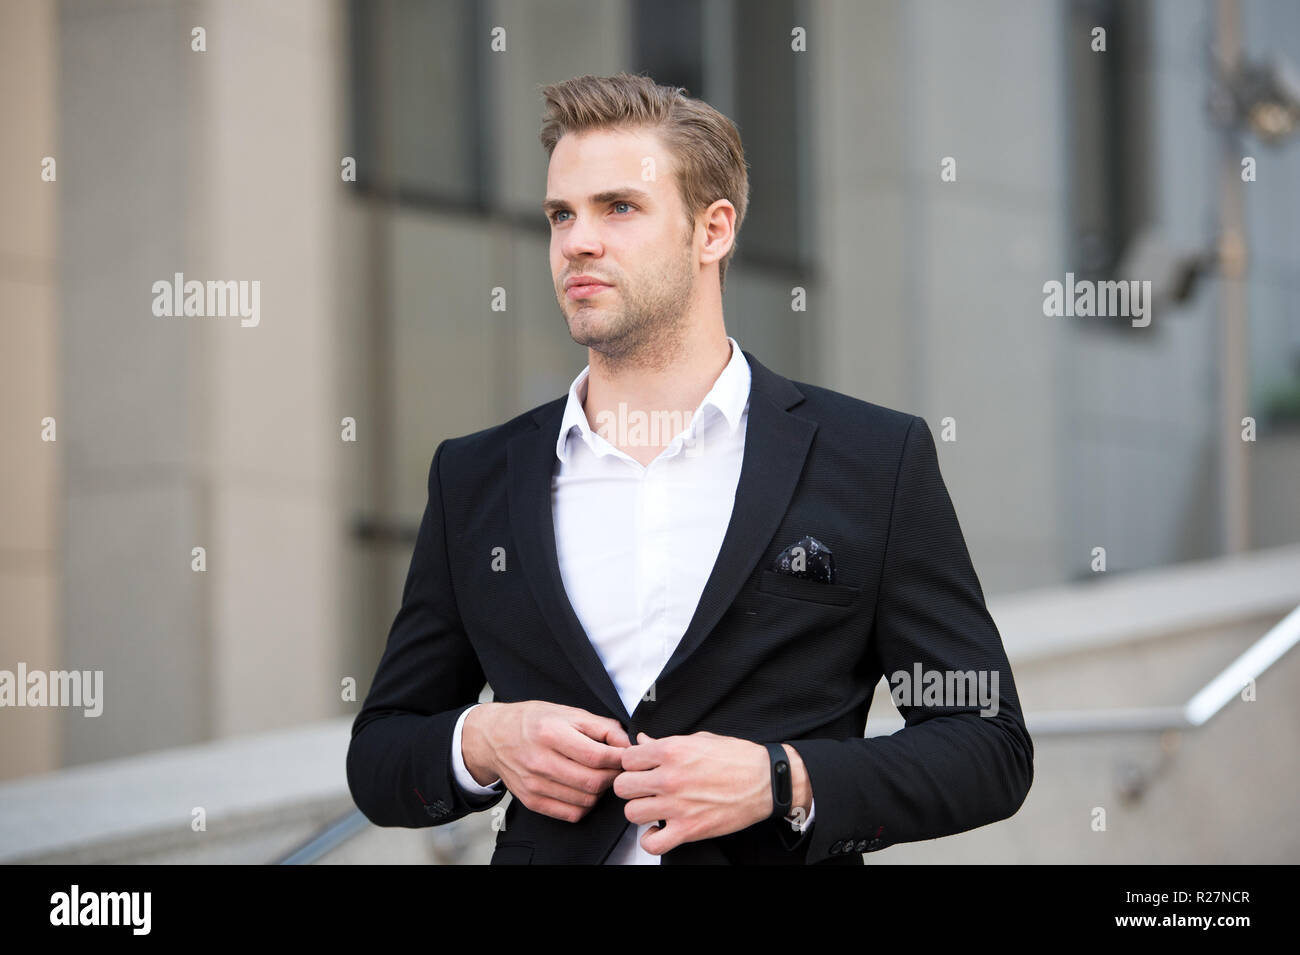 Uniform business environments decorum professionalism woven culture organization. Man formal suit businessman well groomed urban background. Professional attire wear in professional environments. - Stock Image